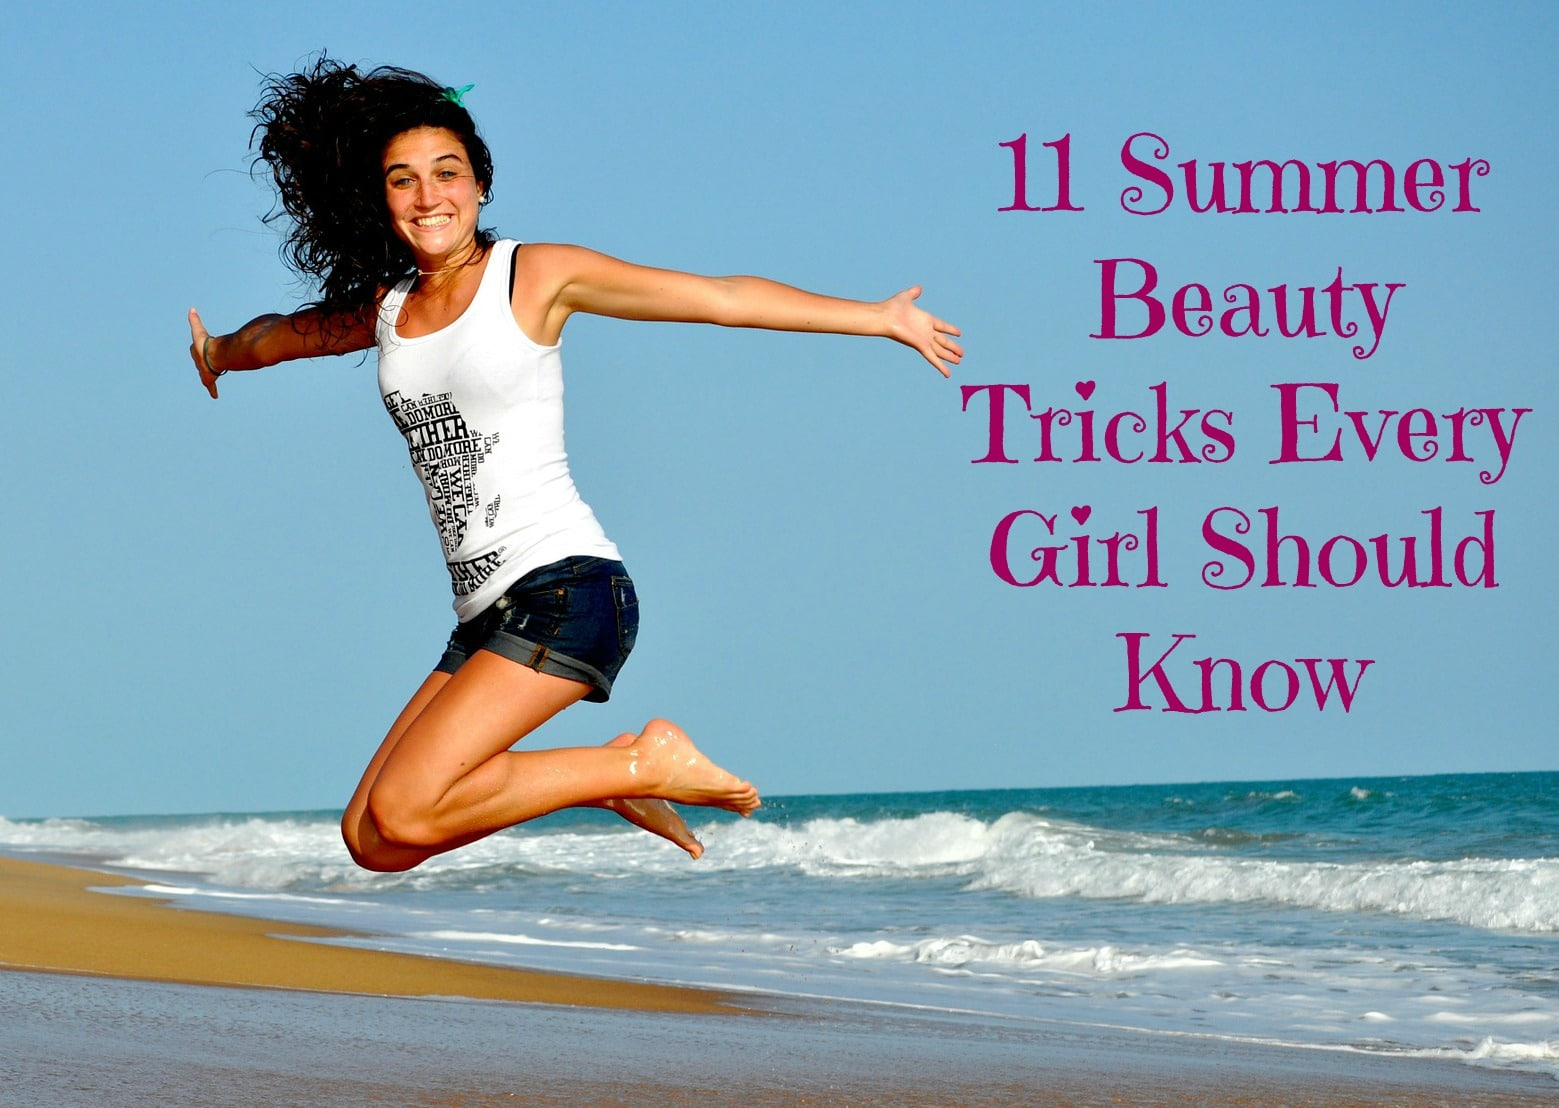 Summer Beauty Tricks